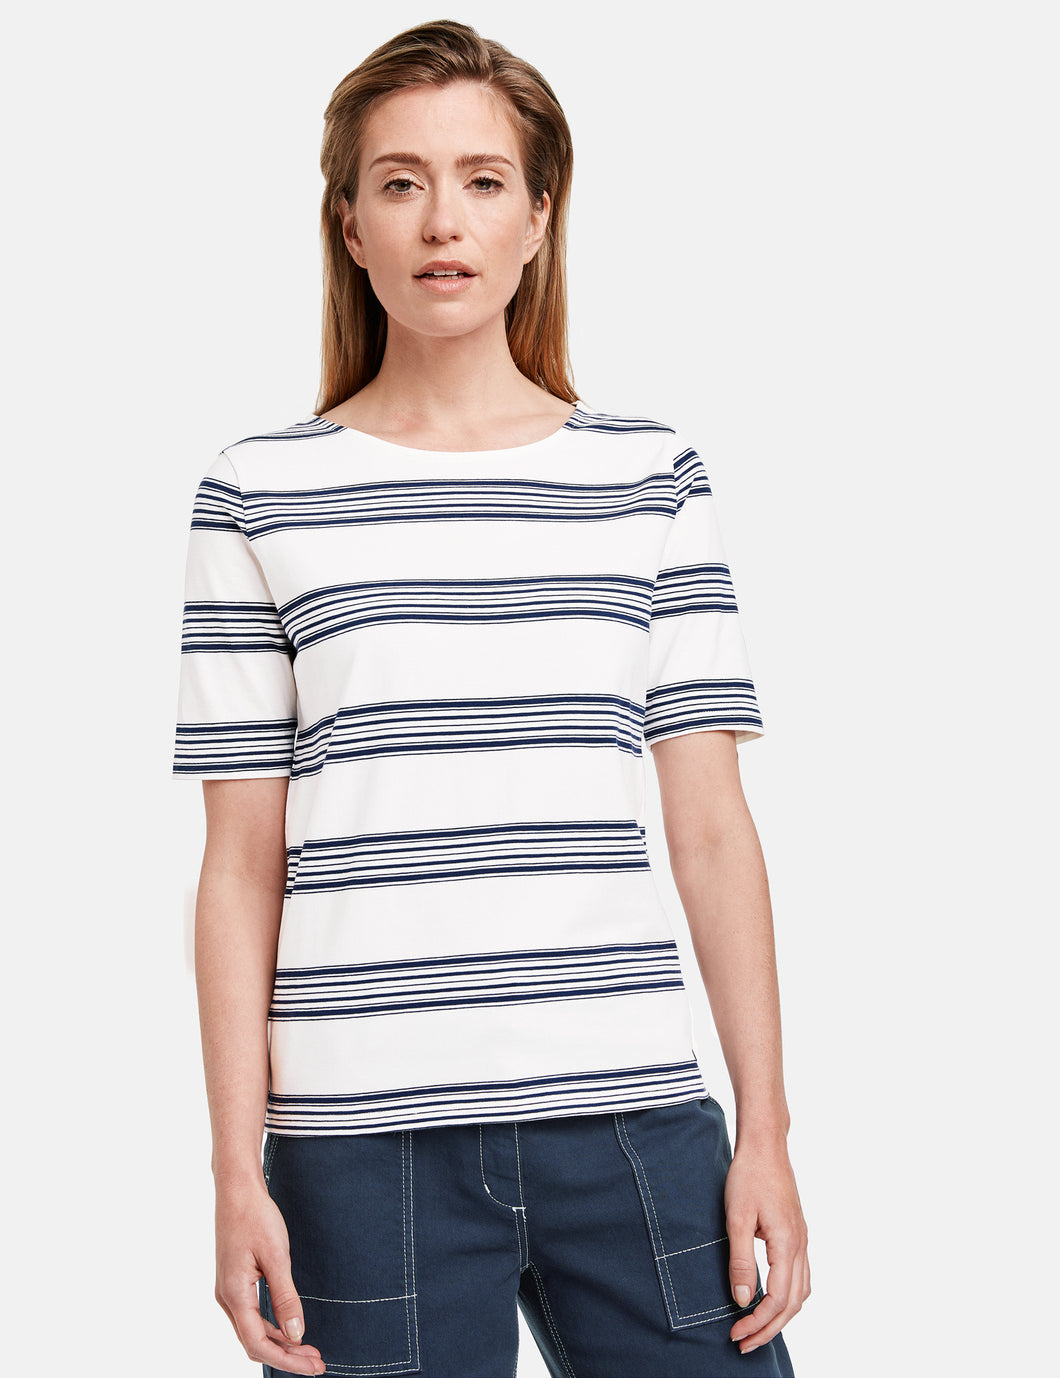 Top with Stripes